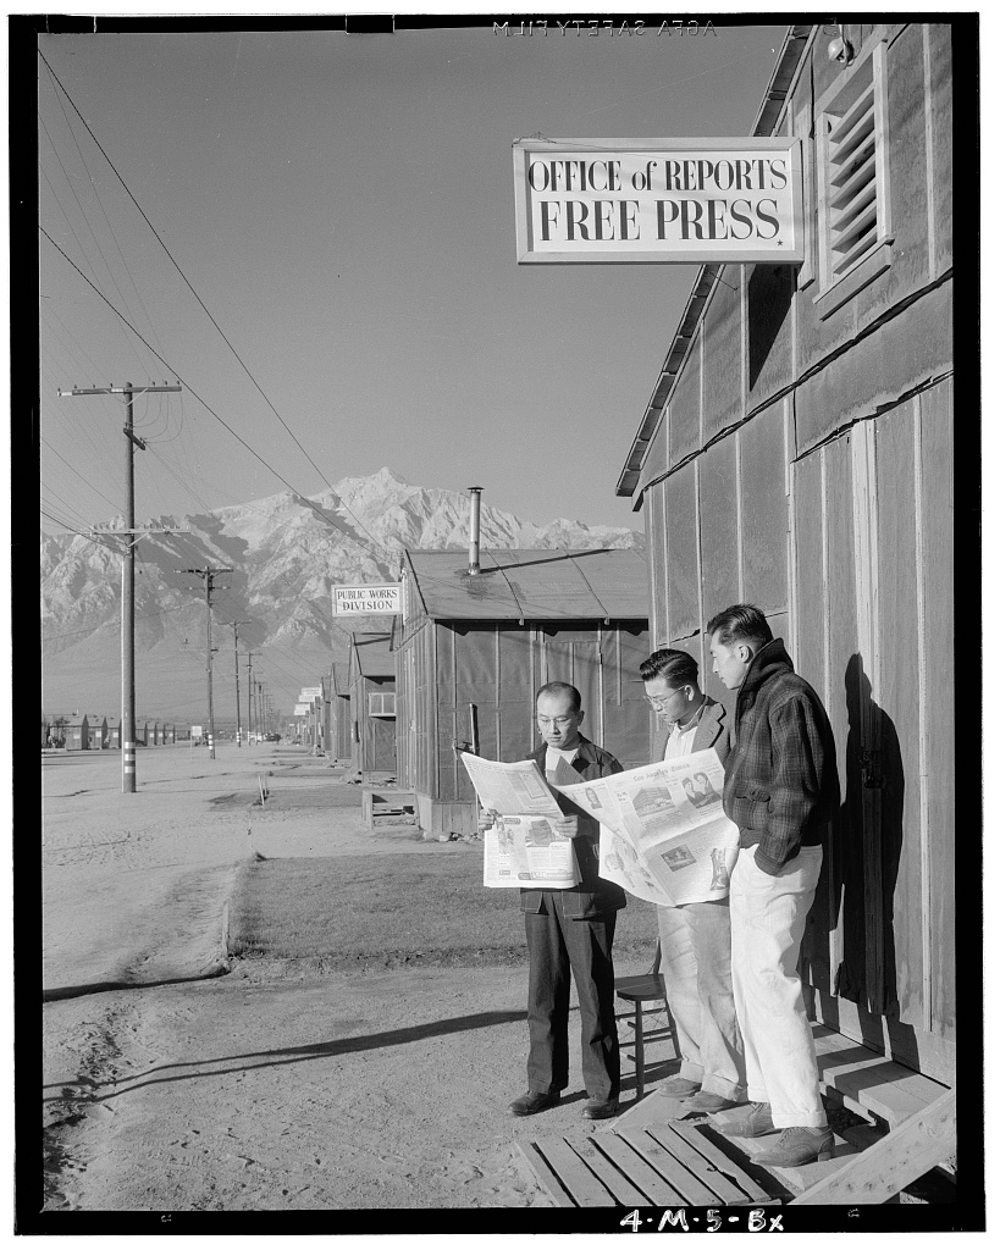 Roy Takeno (Editor) and group reading Manzanar paper [i.e. Los Angeles Times] in front of office, Yuichi Hirata, Nabuo Samamura, Manzanar Relocation Center, California